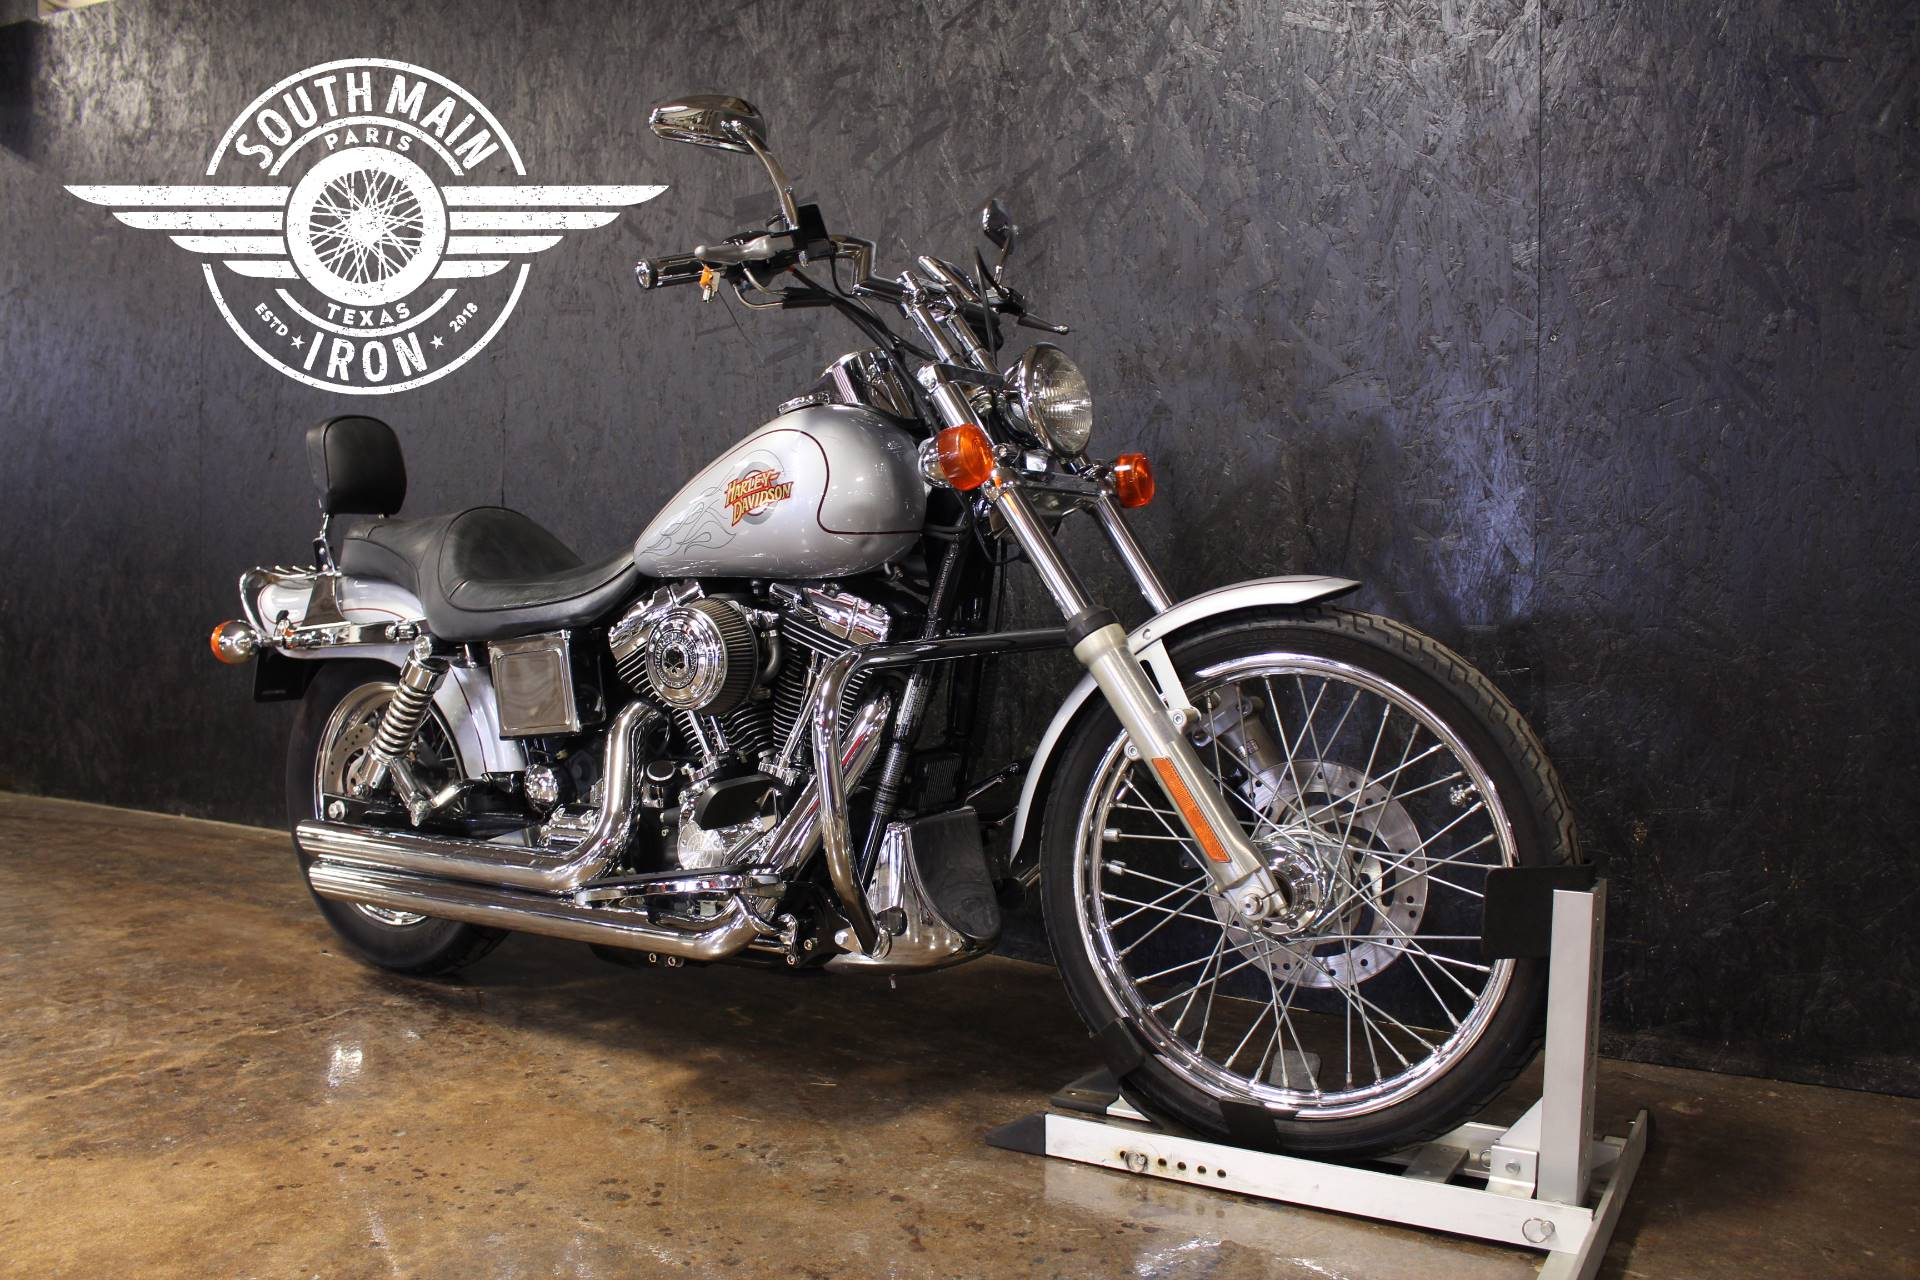 2001 Harley-Davidson FXDWG in Paris, Texas - Photo 2